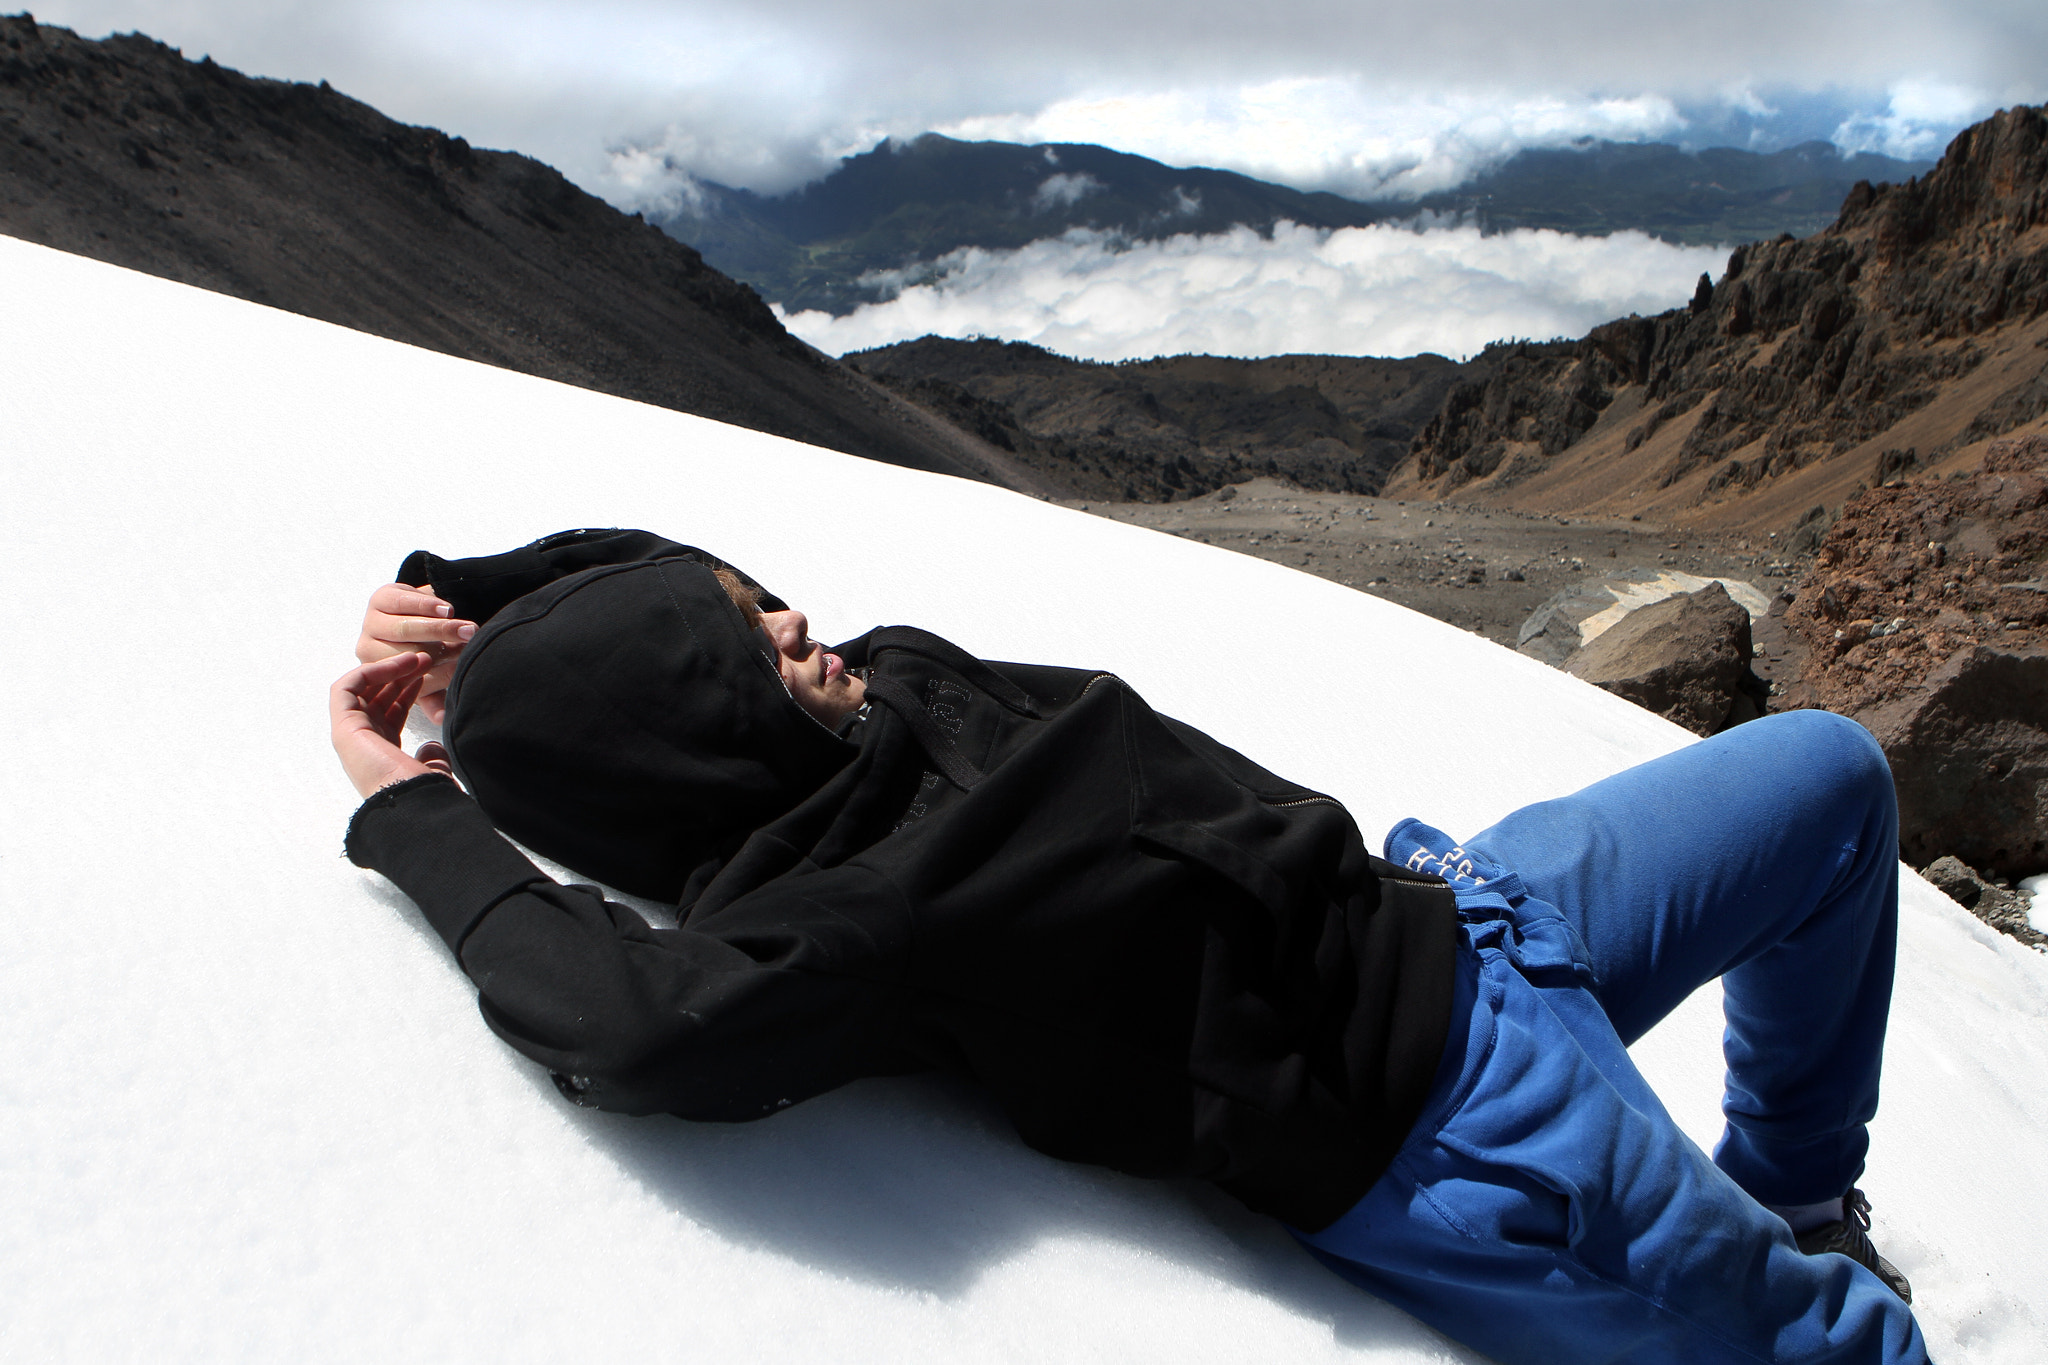 Photograph Taking a break in the snow at 5000 meters altitude by Cristobal Garciaferro Rubio on 500px